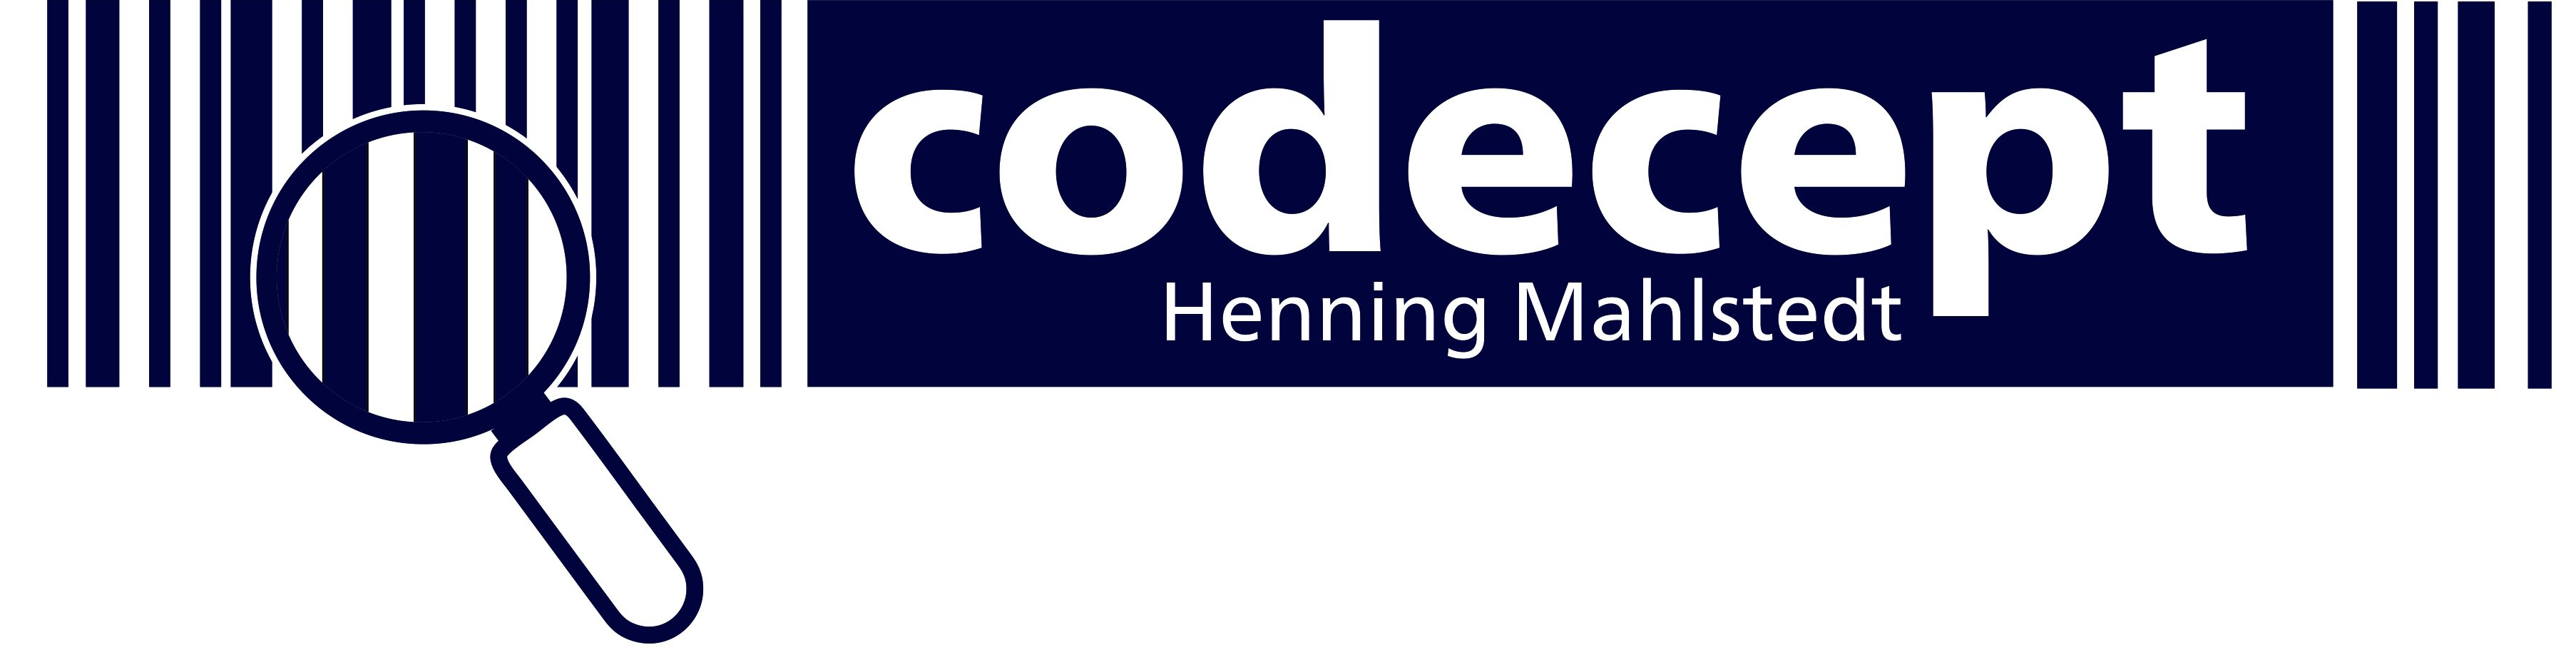 codecept – Henning Mahlstedt